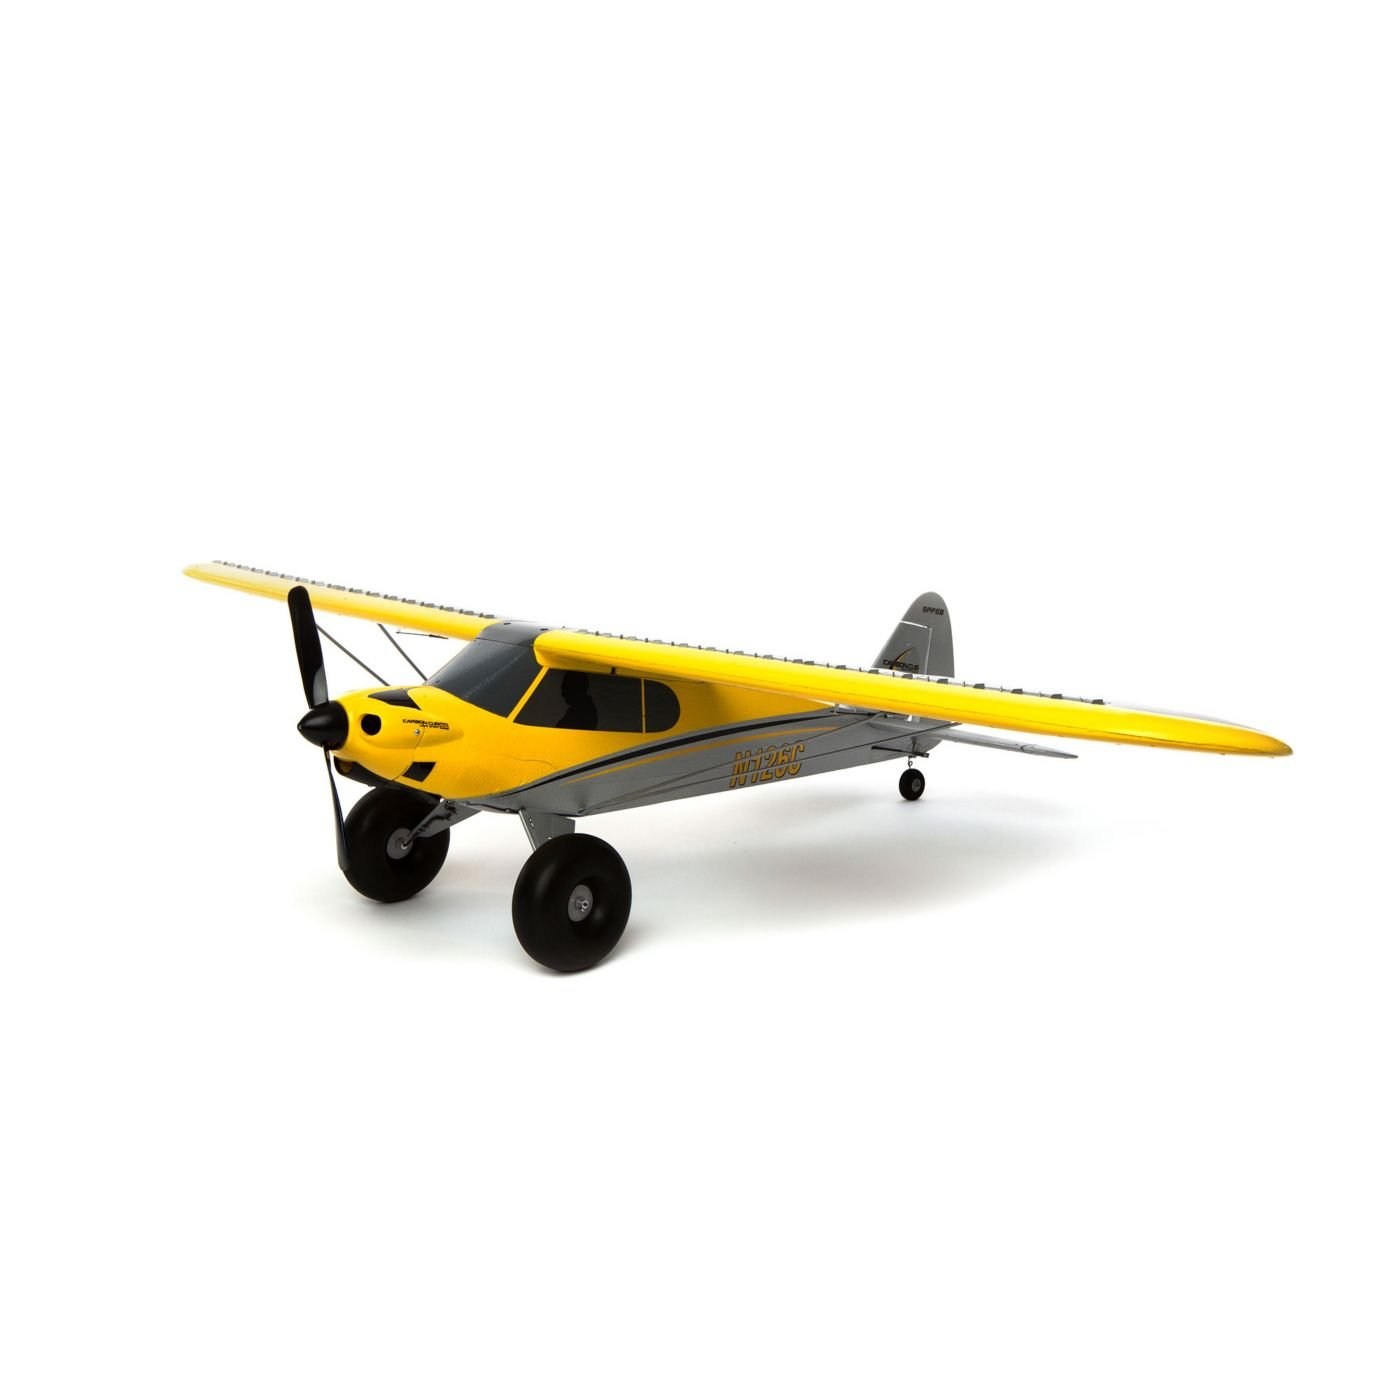 HobbyZone Hobbyzone Carbon Cub S+ 1.3M RC Airplane BL BNF Basic with GPS (Transmitter, Battery & Charger Not Included), HBZ3250, Yellow